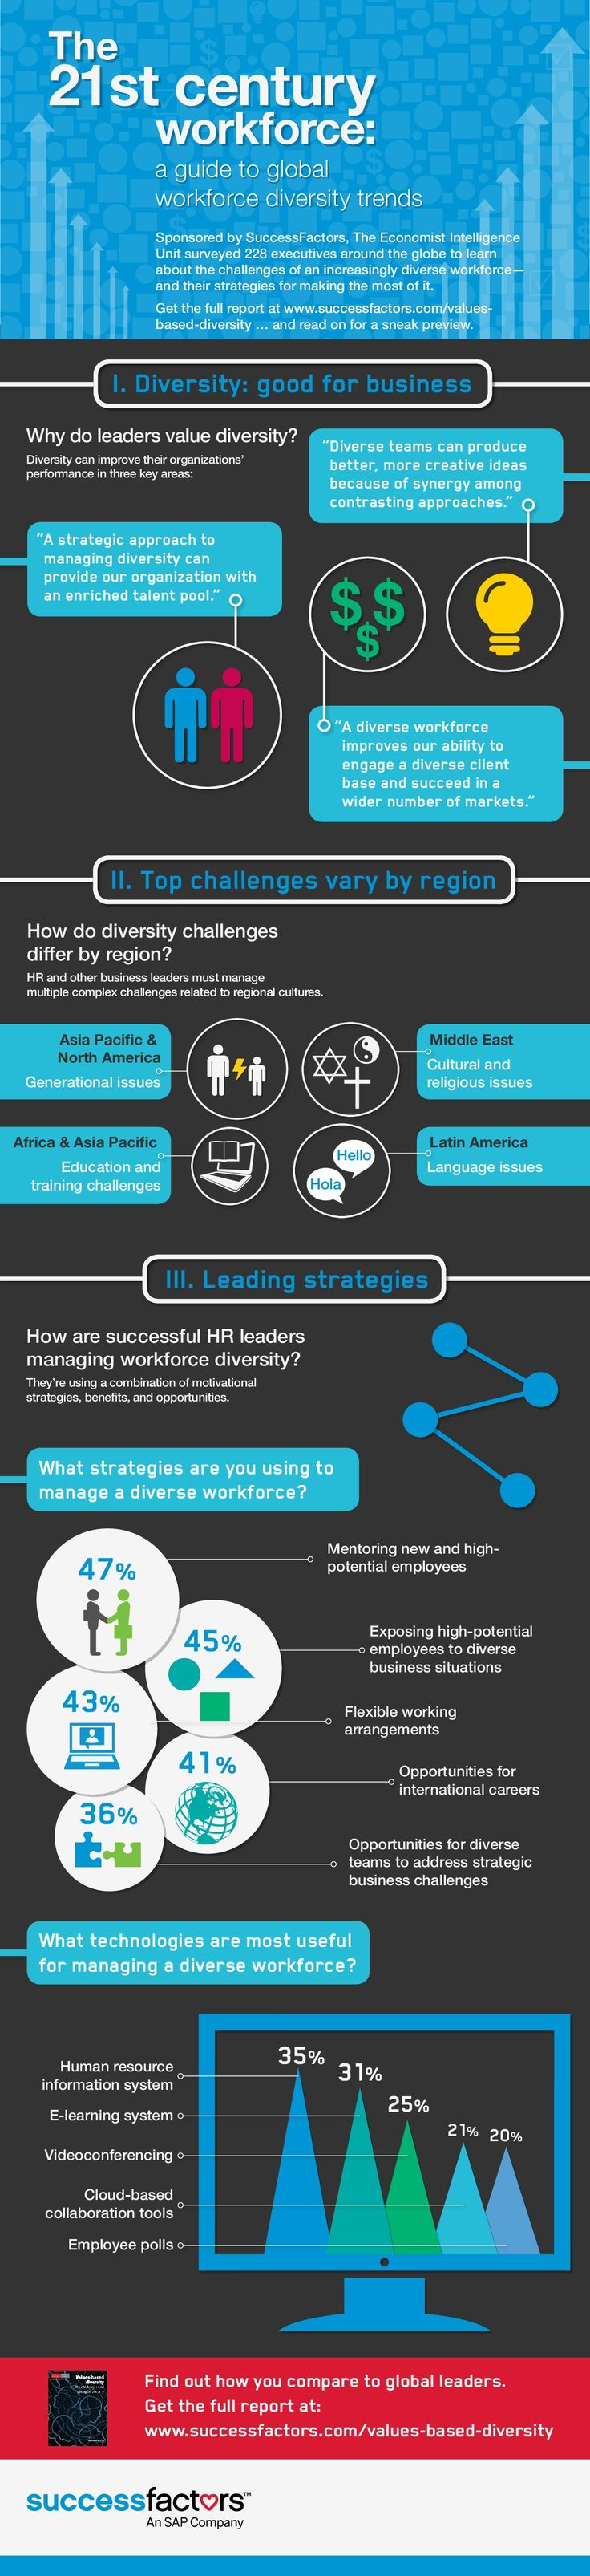 Infographic: The 21st Century Workforce